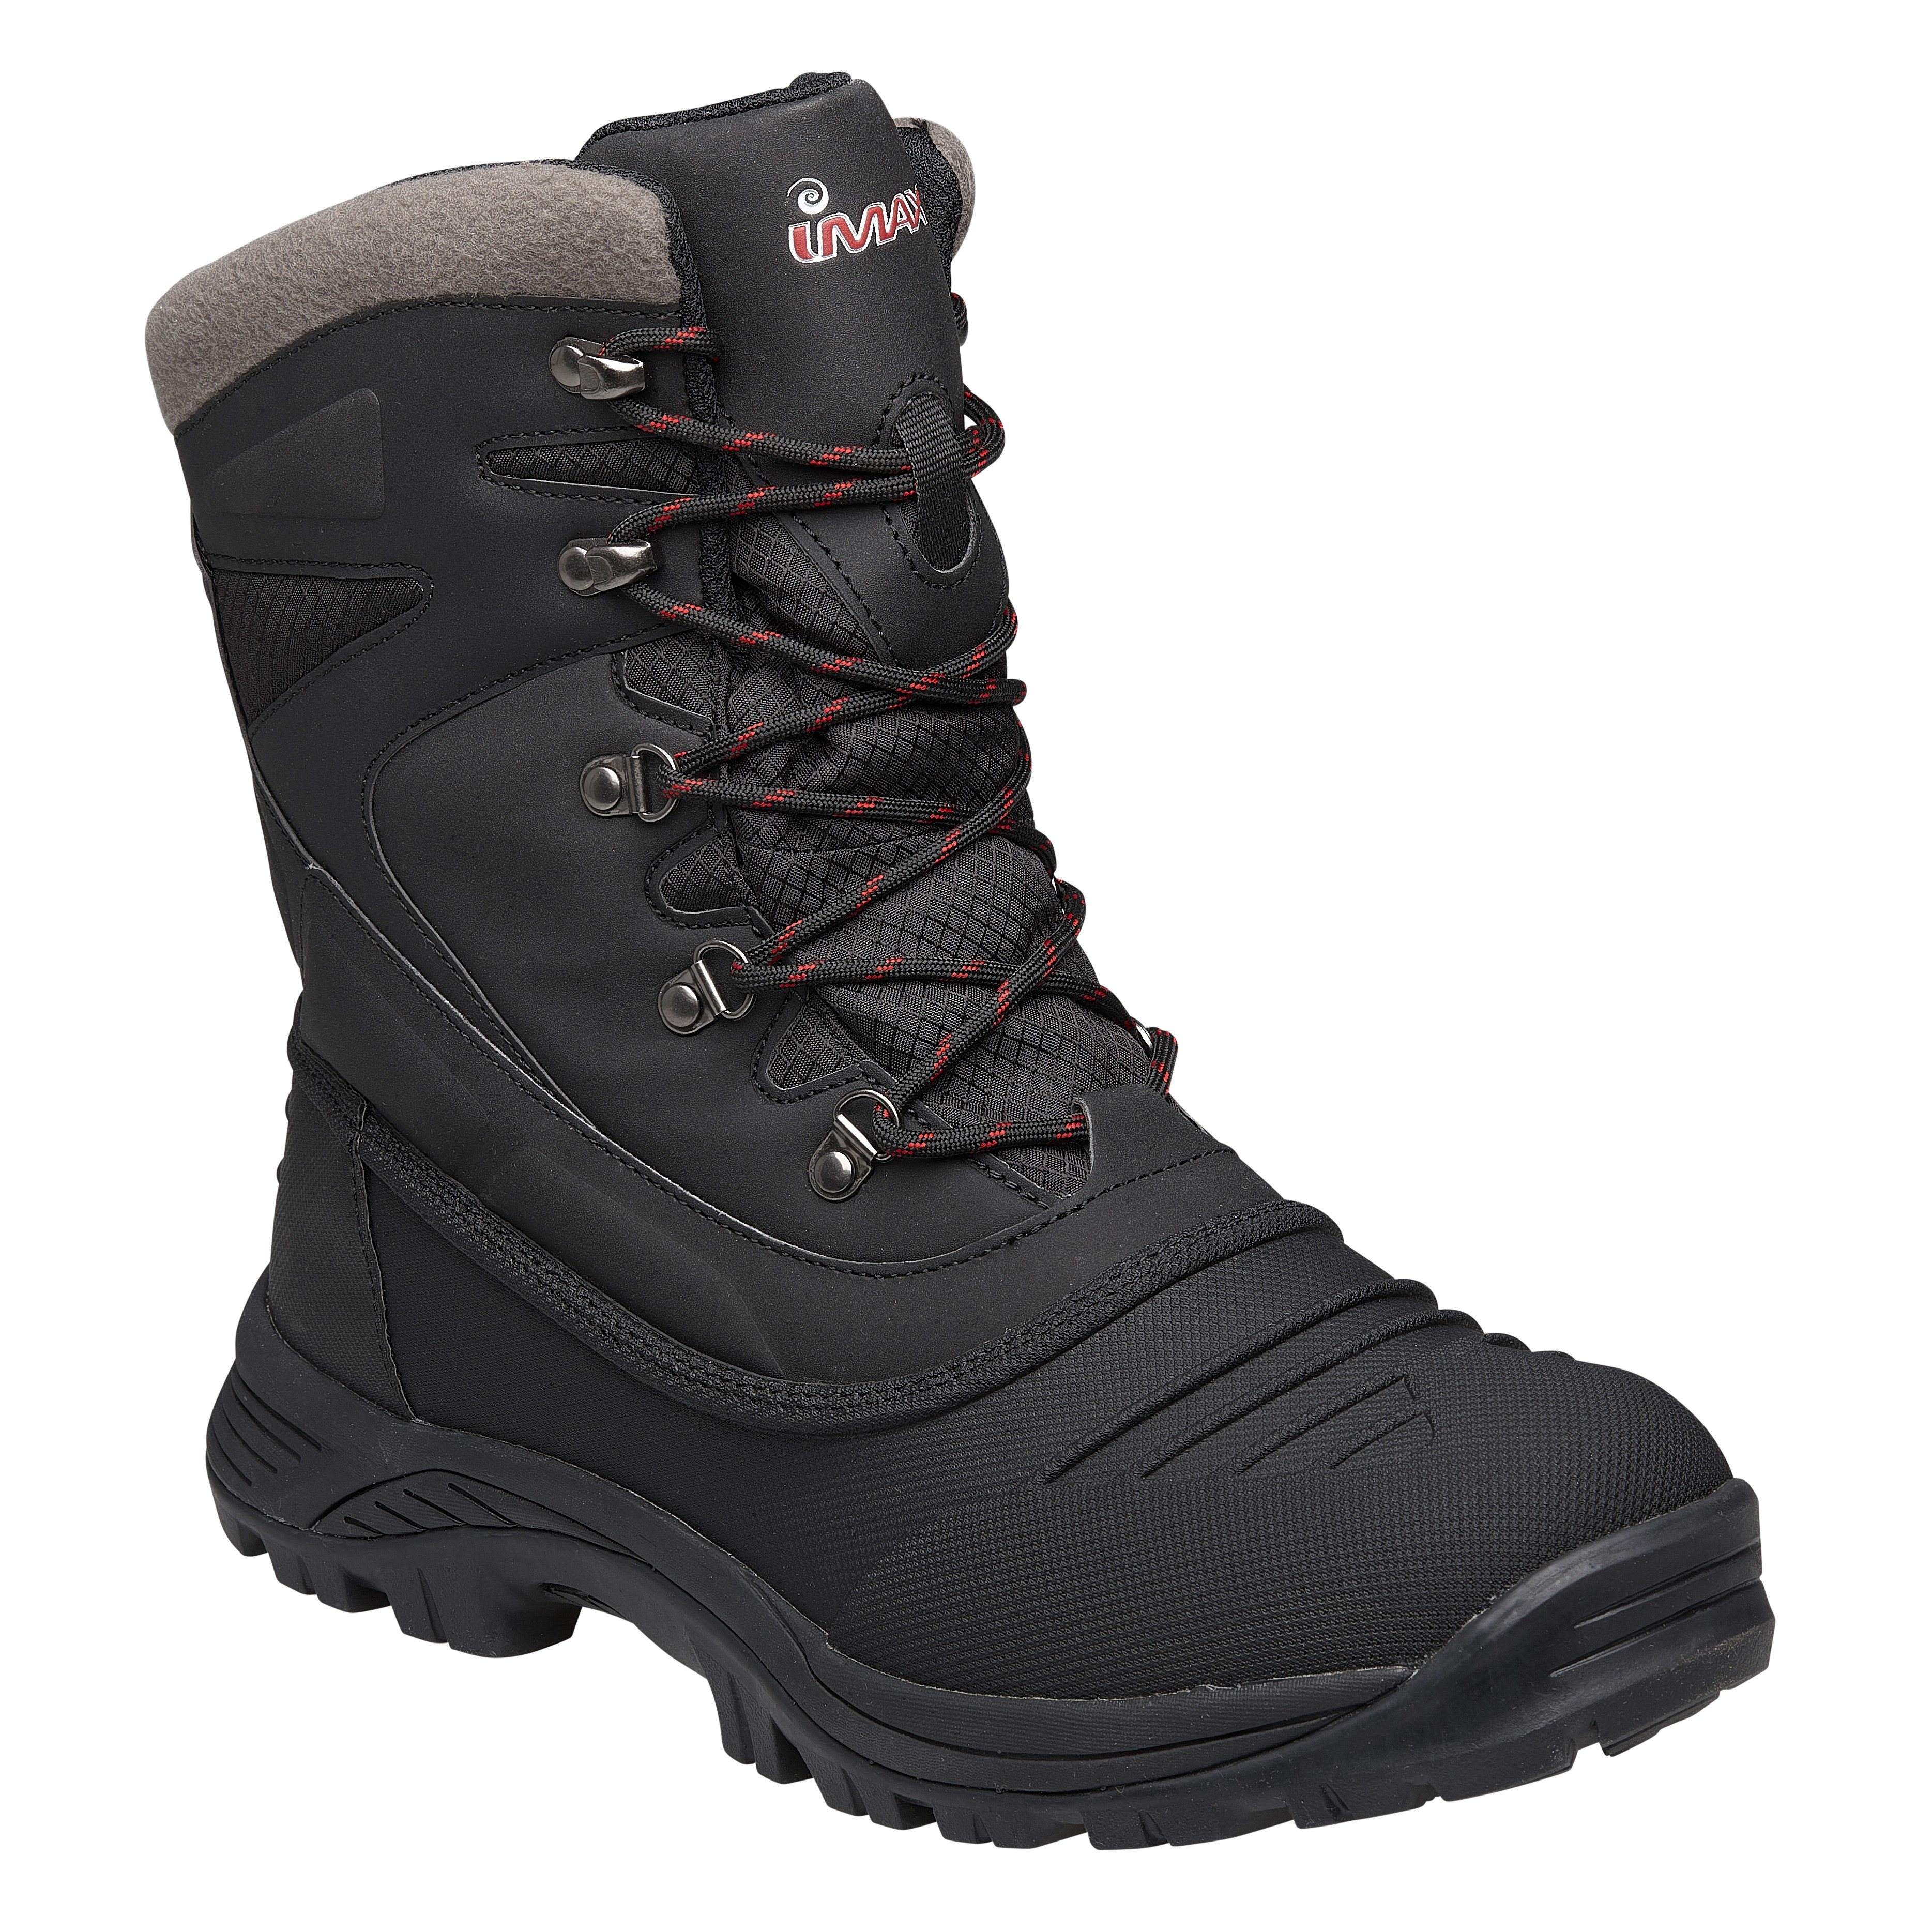 Imax Expert Boots Size 9